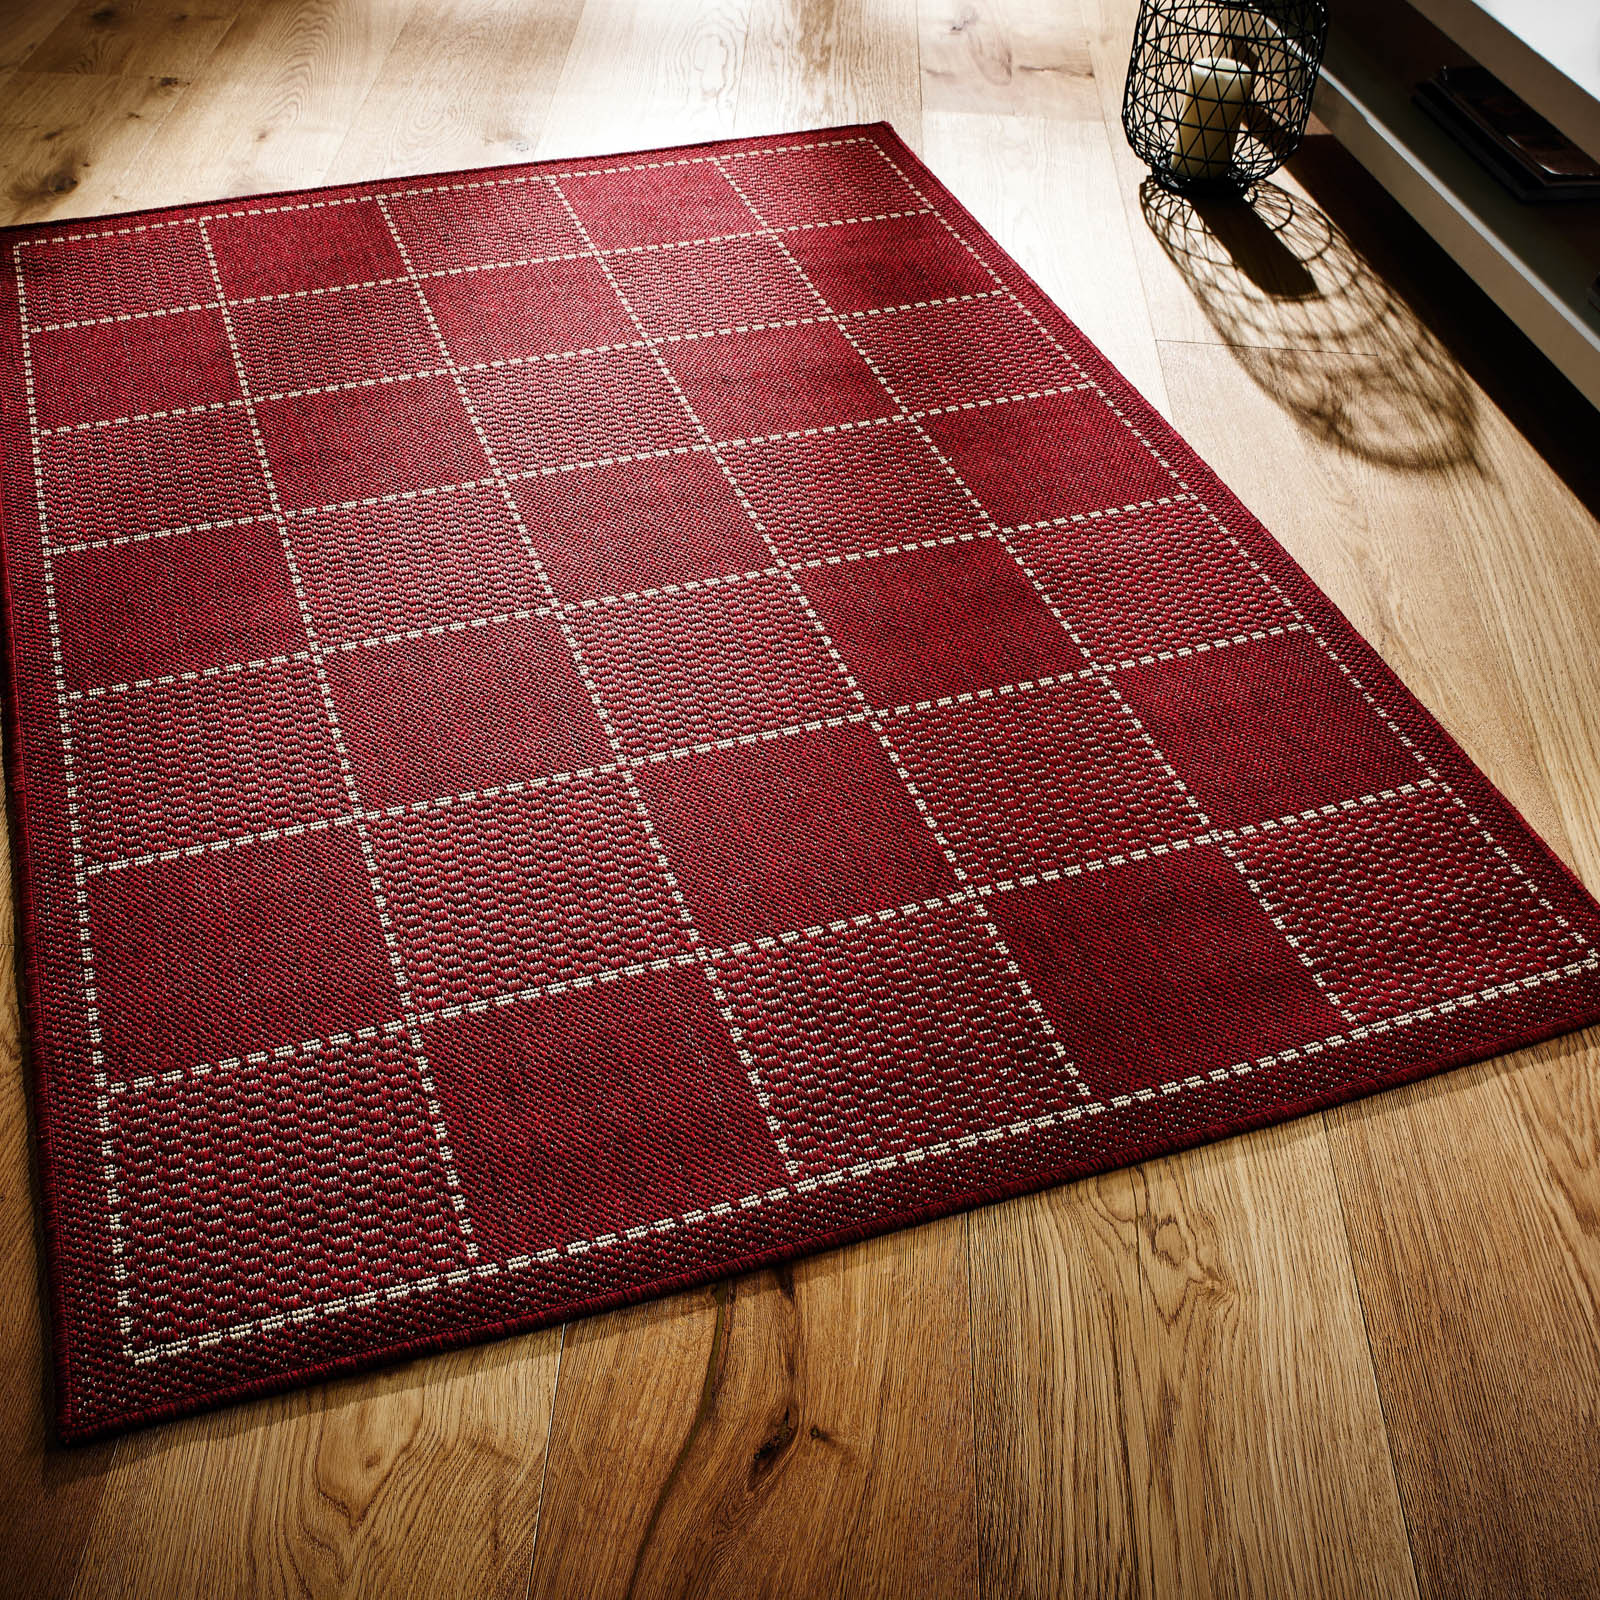 Kitchen Floor Mats Uk Kitchen Rugs Discover Our Best Selling Styles With Free Delivery